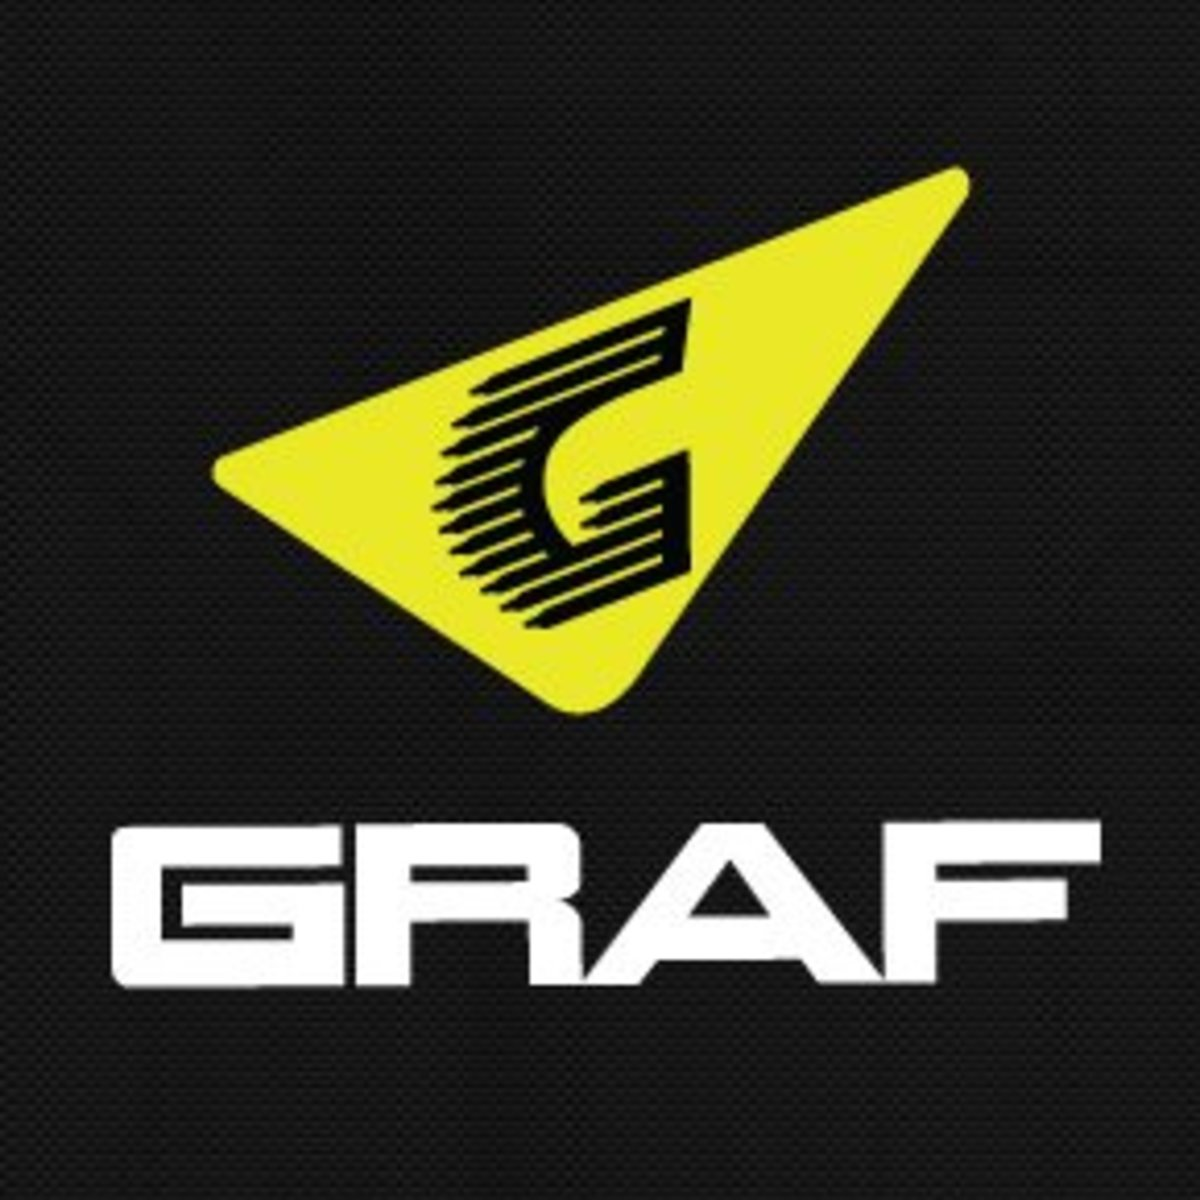 The Demise of Graf Canada